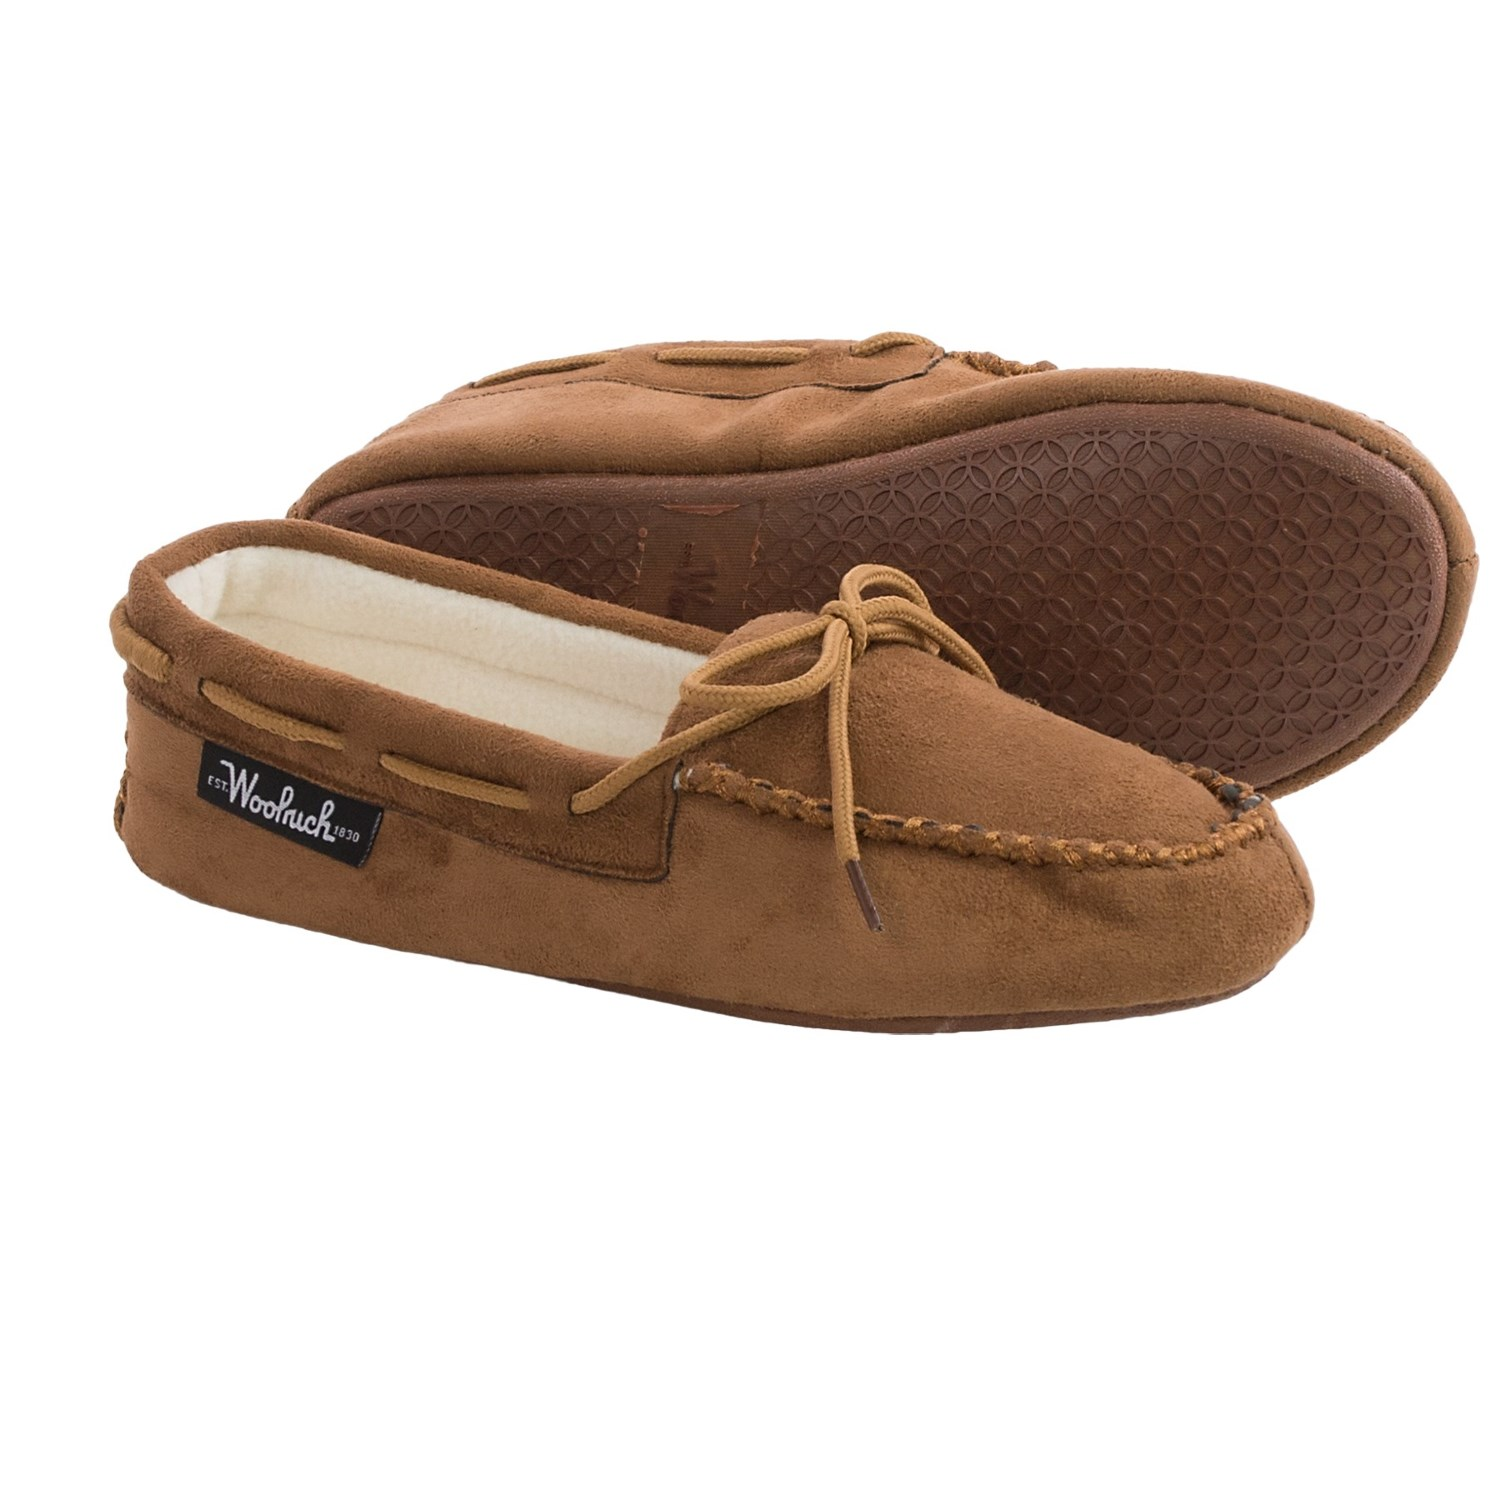 woolrich lakeside moccasins for women 9088v